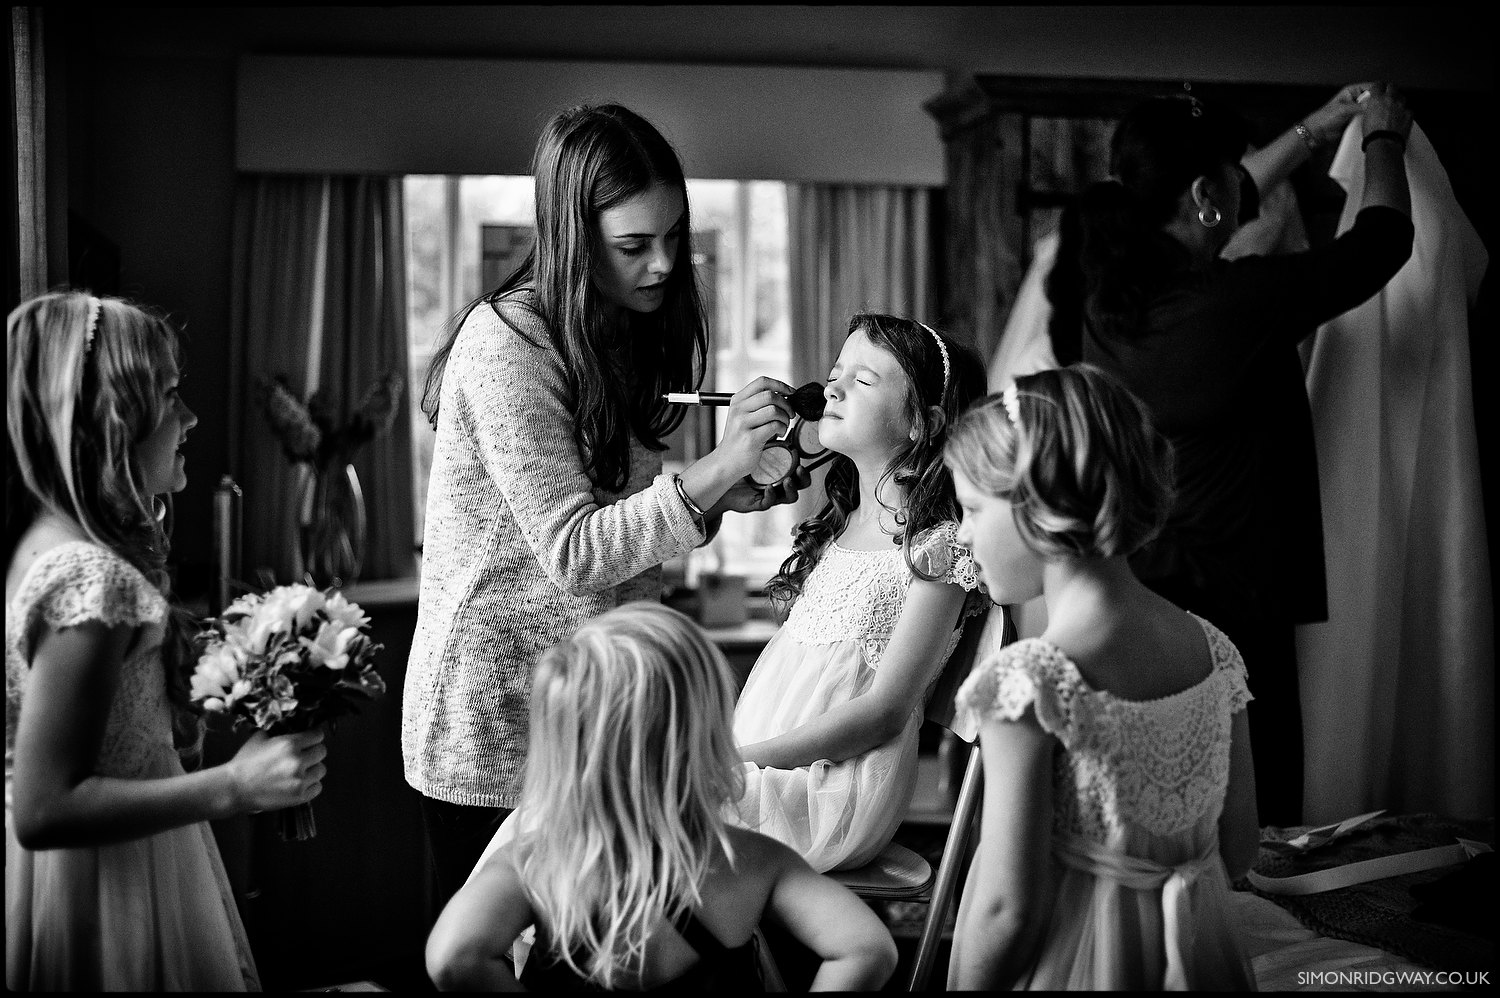 Documentary wedding photography by Simon Ridgway (Leica M9, Zeiss 50/2 Planar)